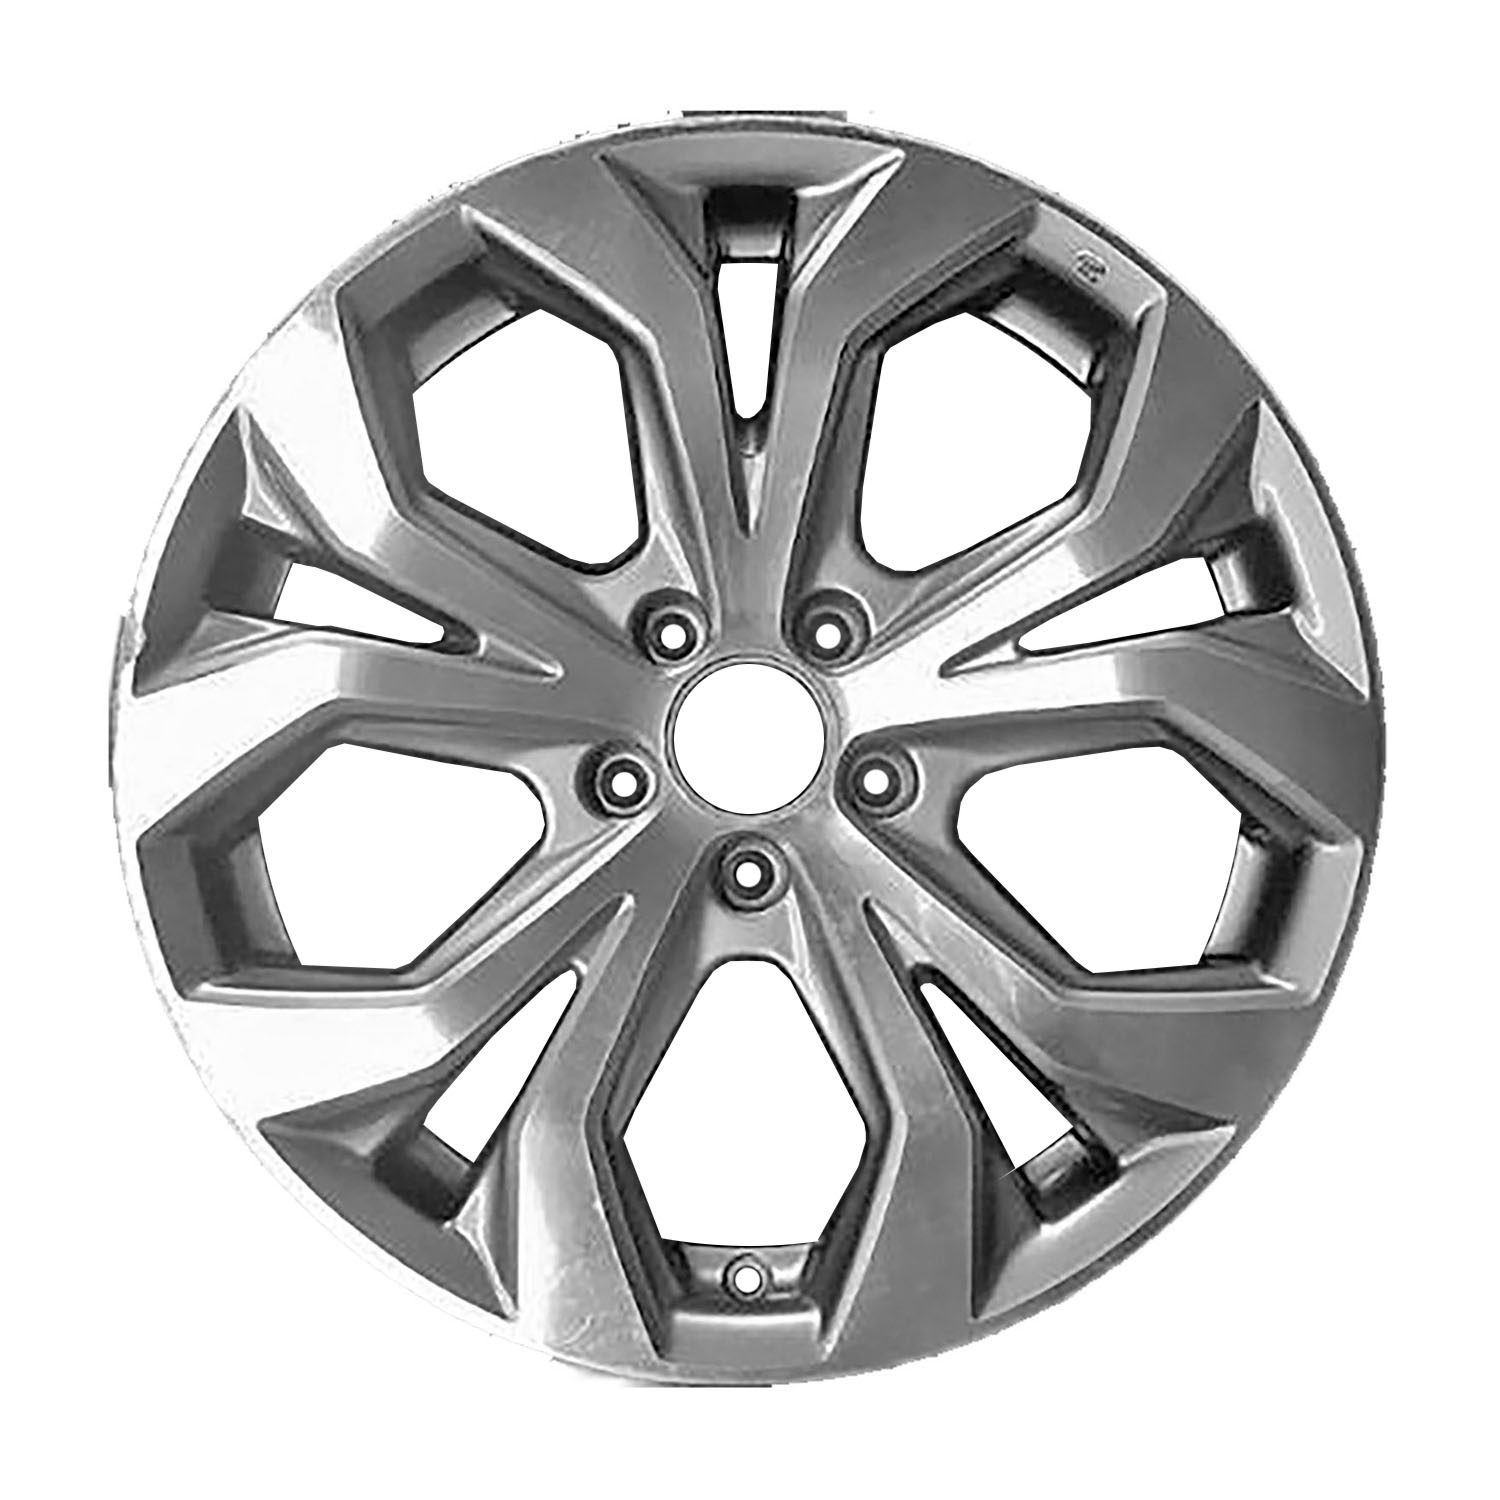 "Reconditioned 18"" Alloy Wheel Fits 2013-2018 Acura RDX 560"